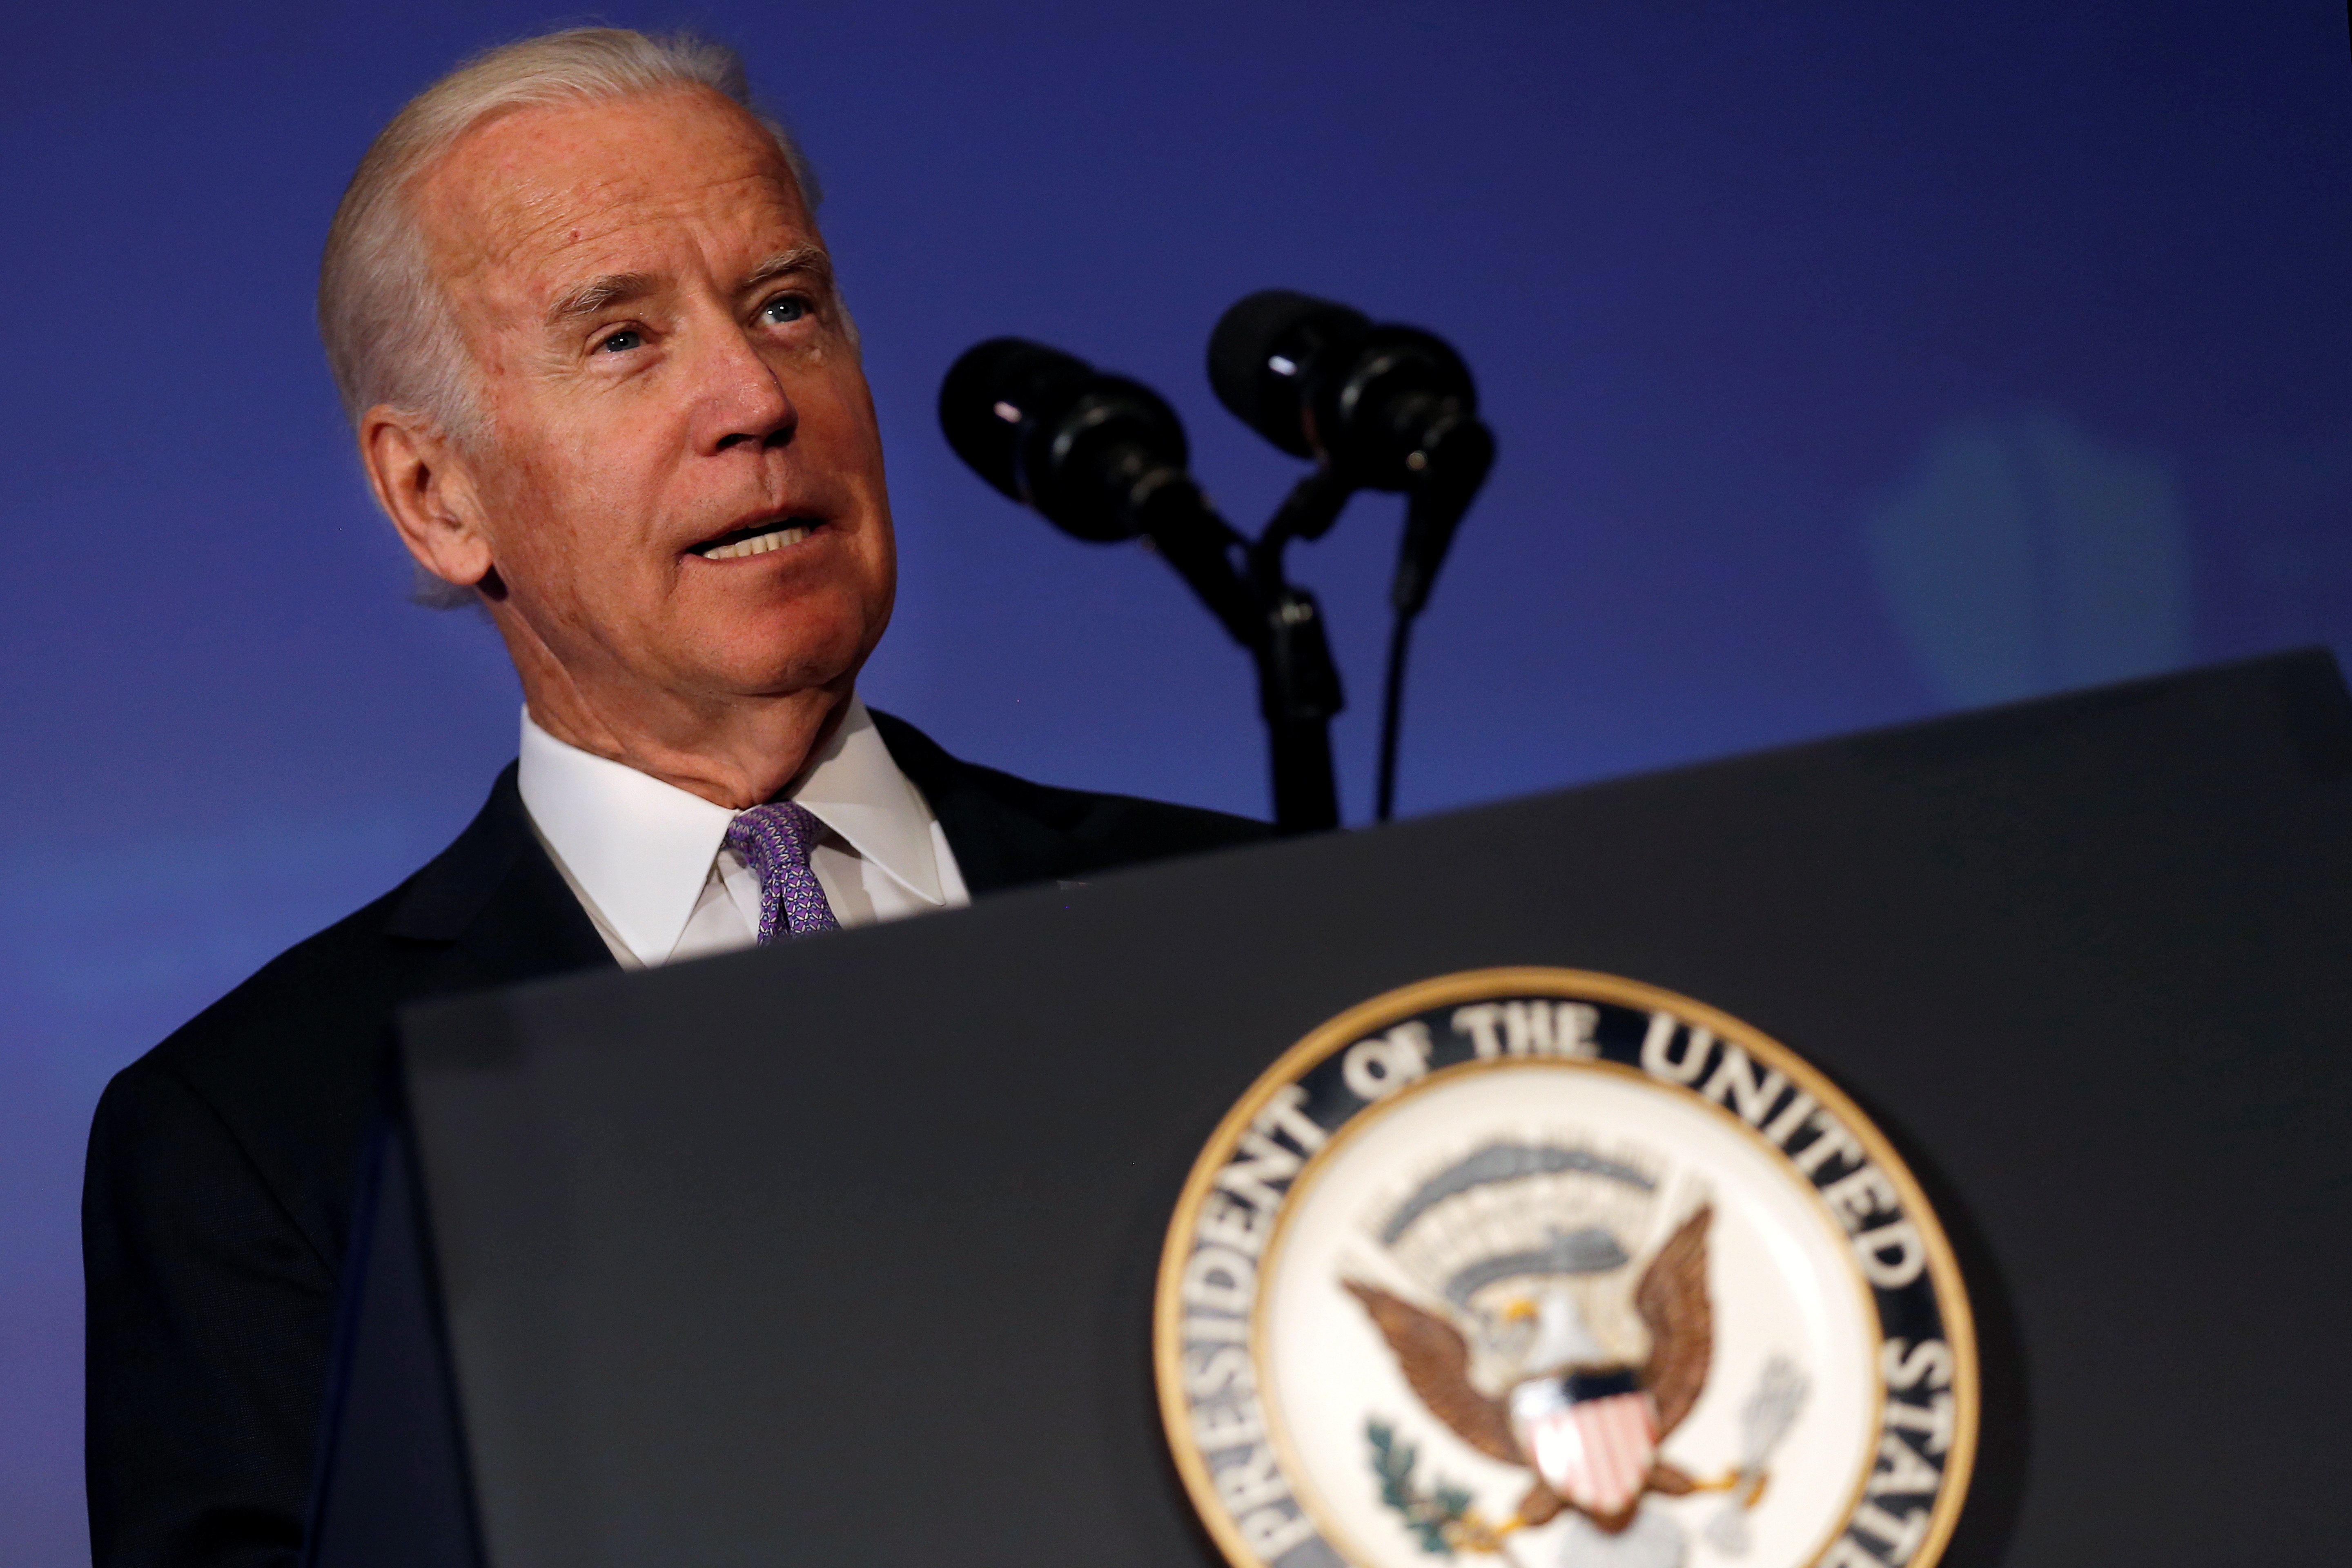 Vice President Joe Biden has been a leader in the fight against violence against